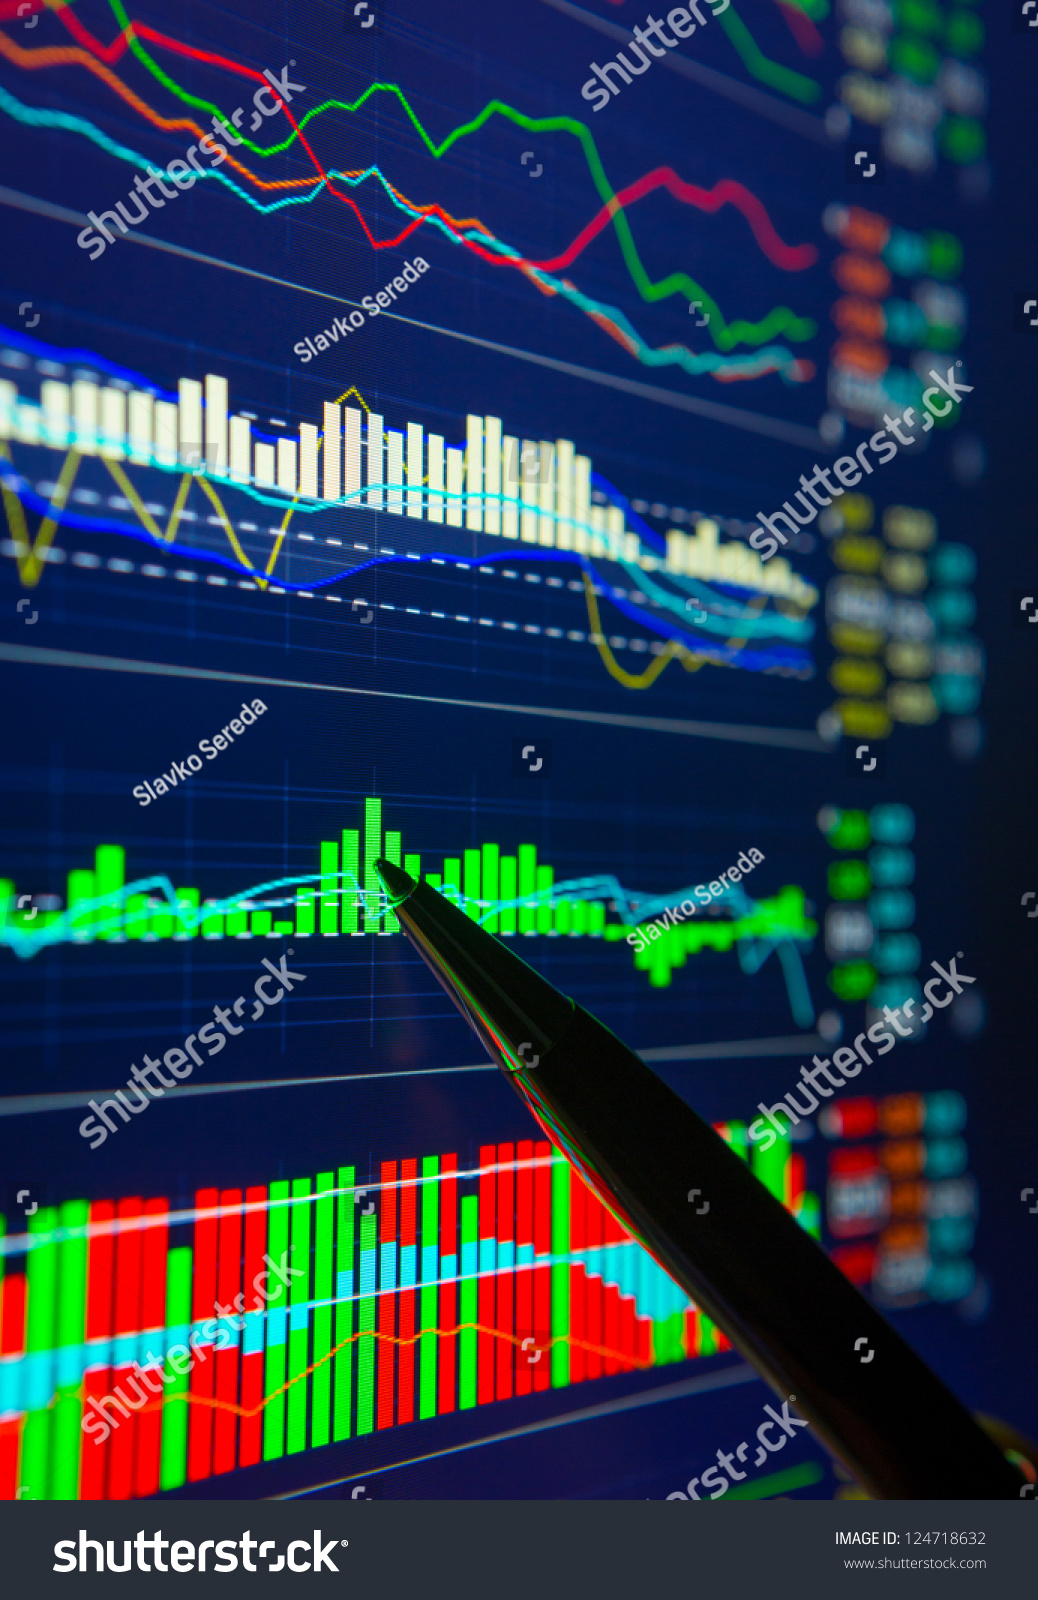 Analyzing Quotes Data Analyzing Forex Market Charts Quotes Stock Photo 124718632